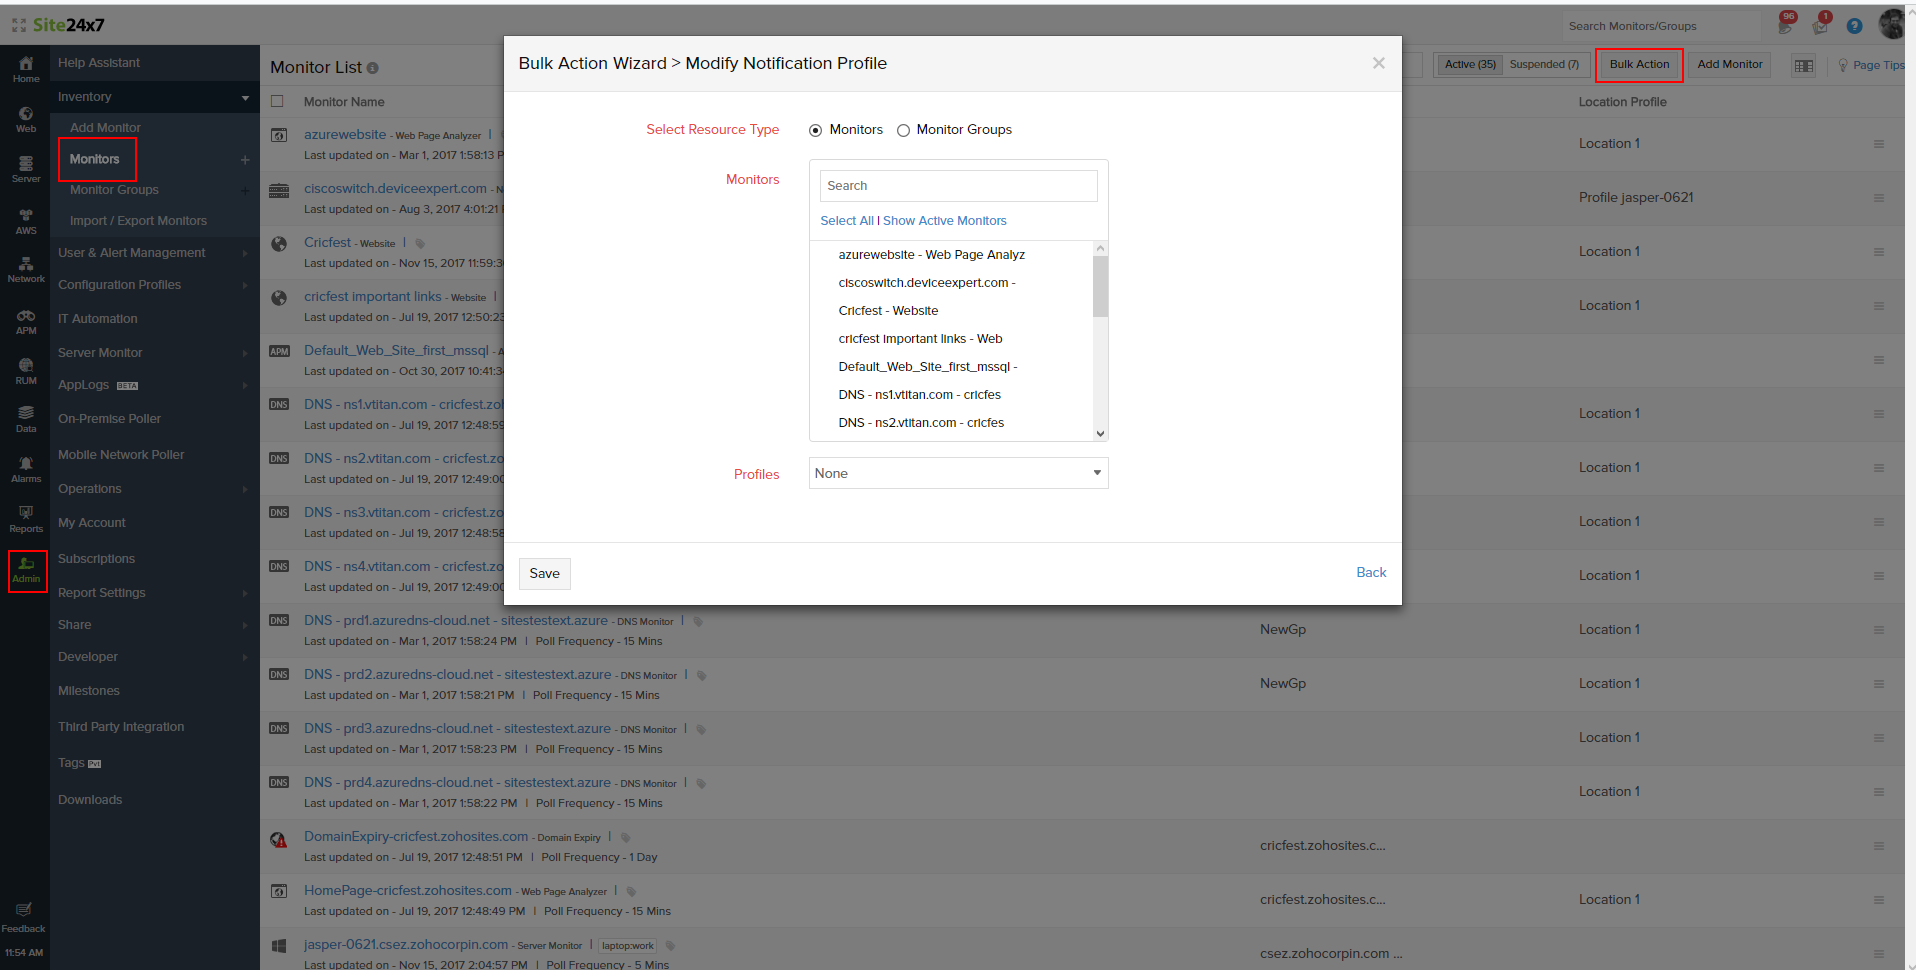 Bulk Actions for Notification Profile